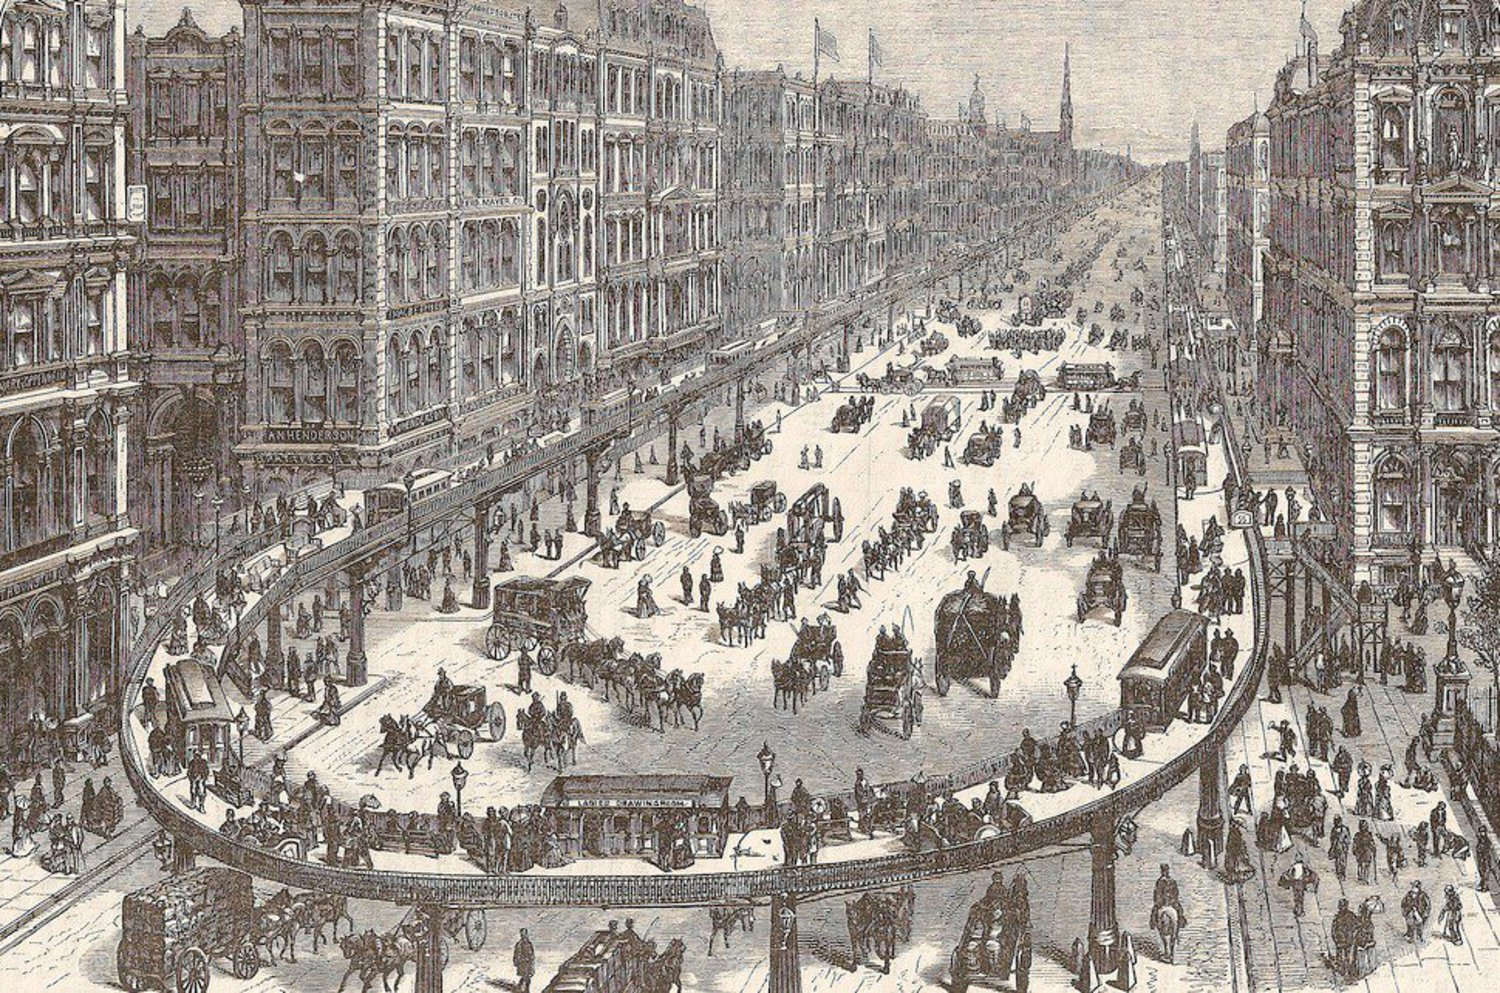 In 1872, Broadway Almost Became a Giant Moving Sidewalk